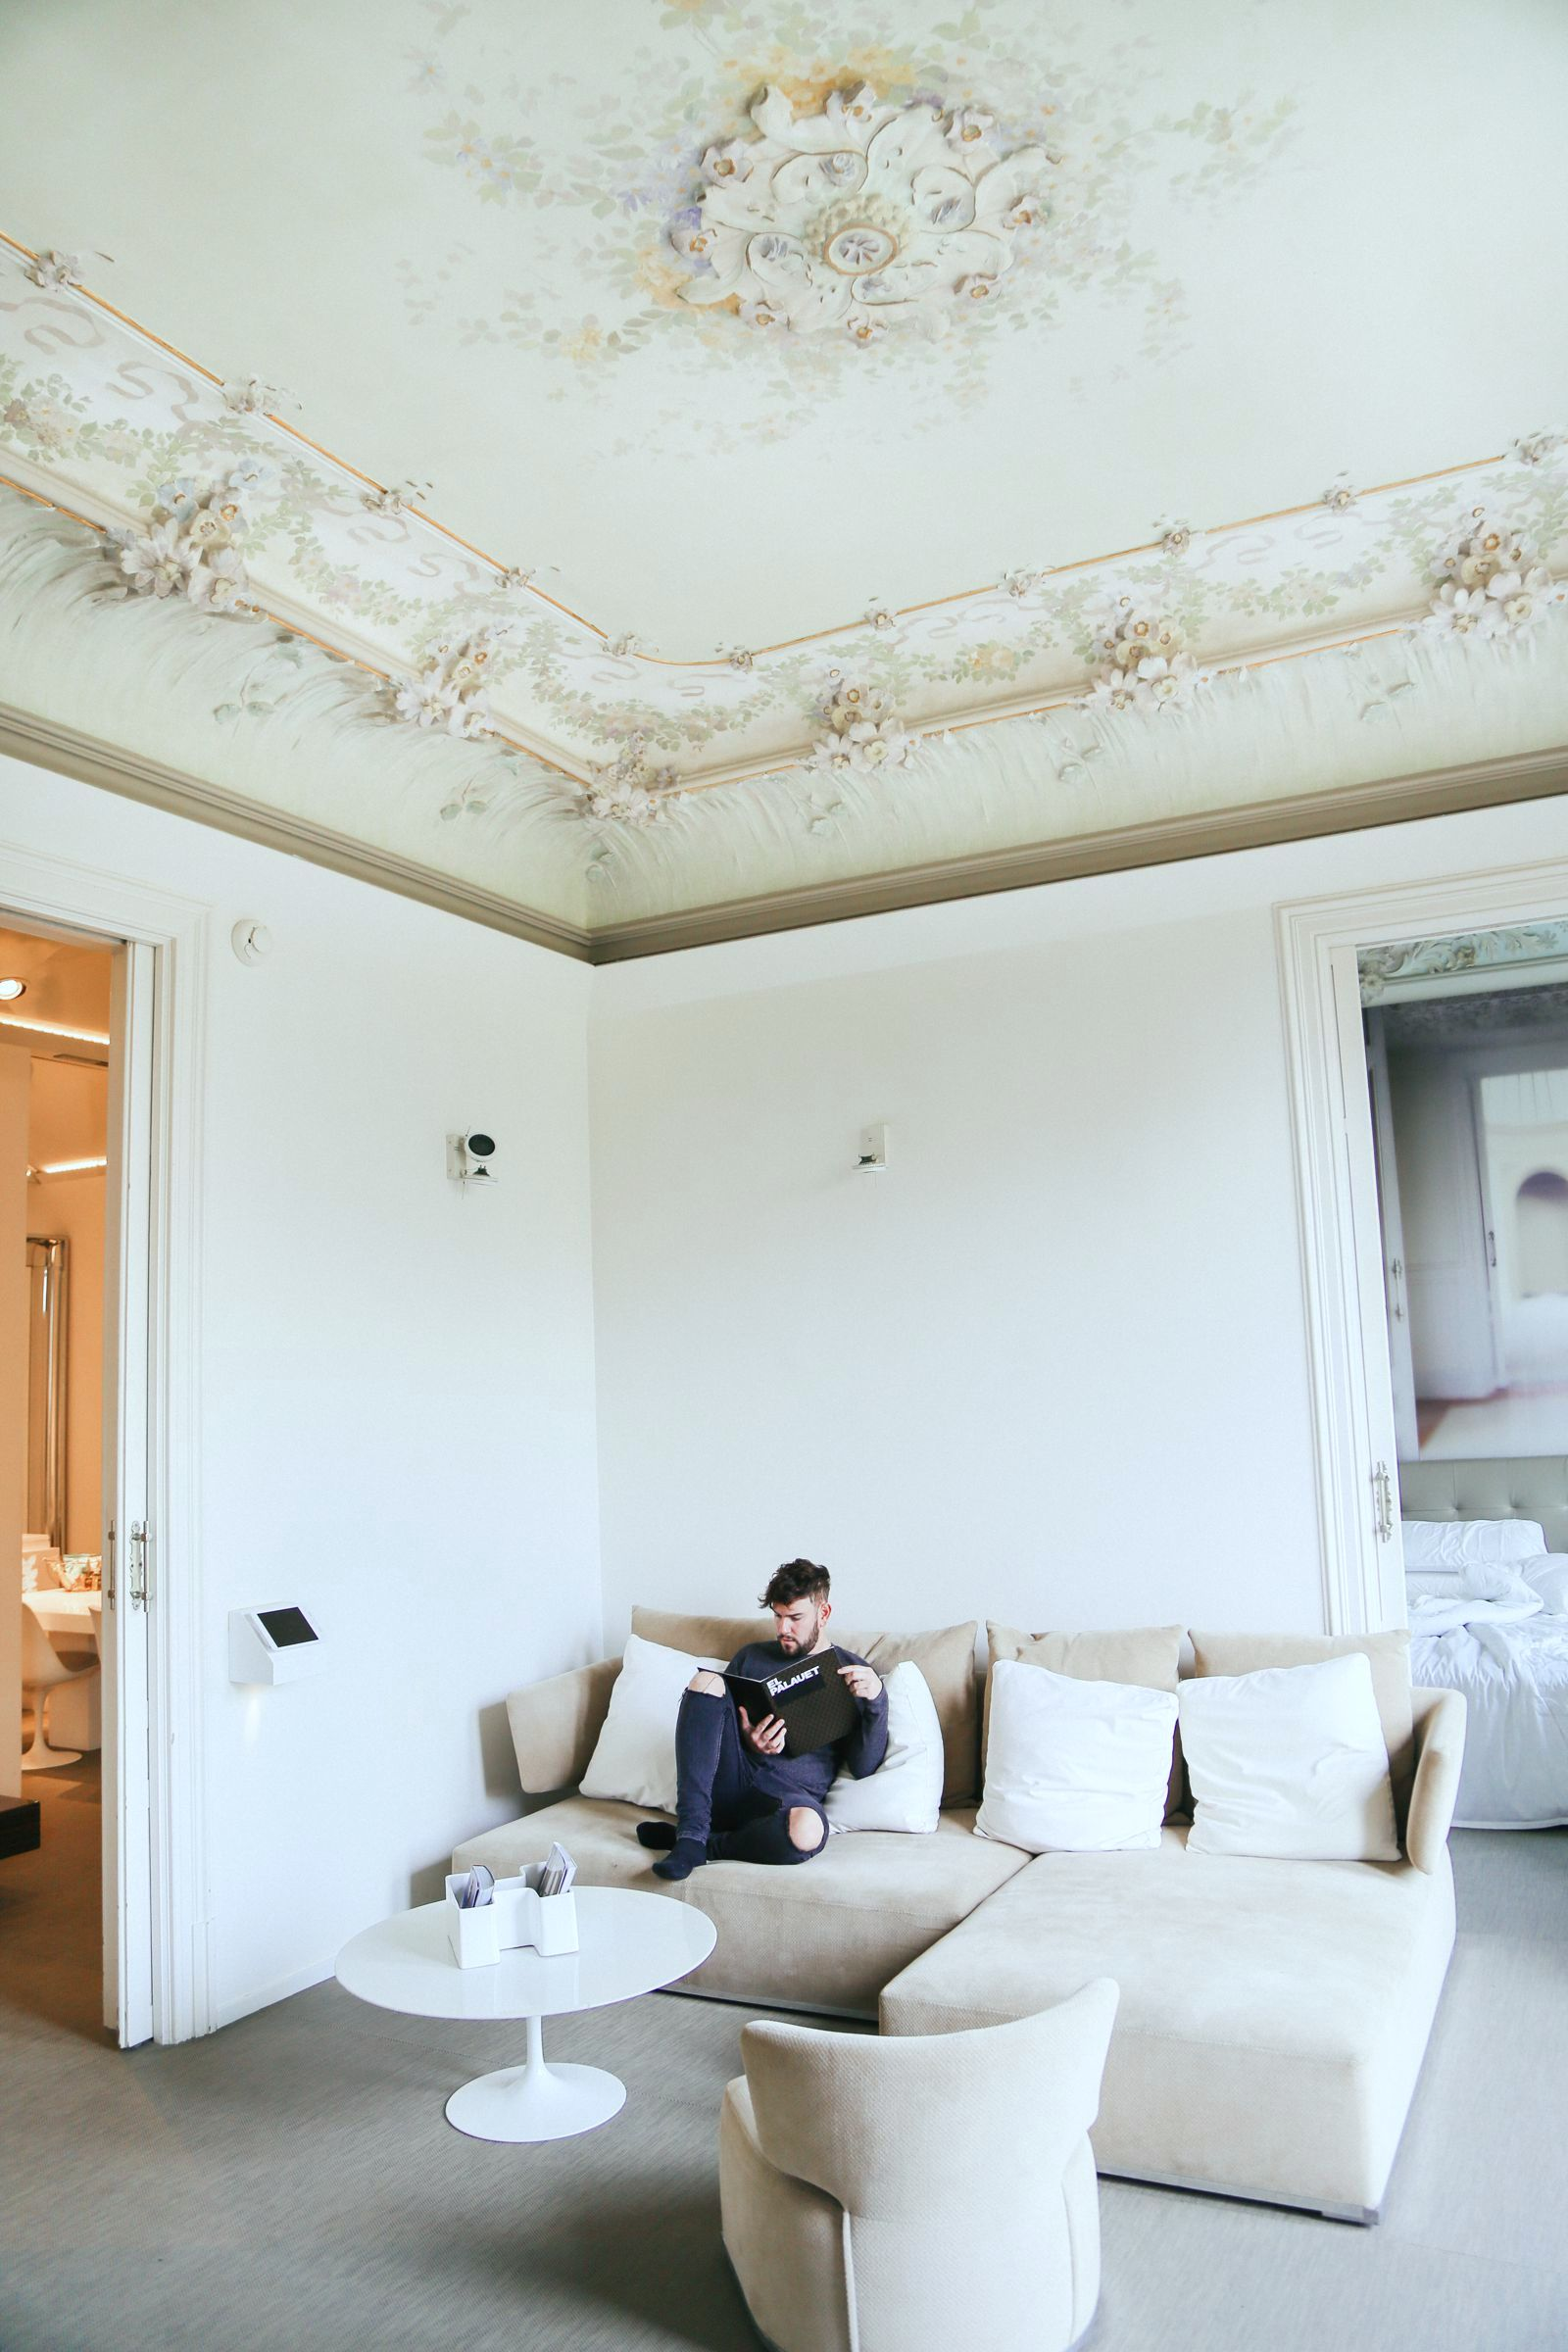 El Palauet Living: The Most Amazing Hotel To Stay In Barcelona, Spain (45)